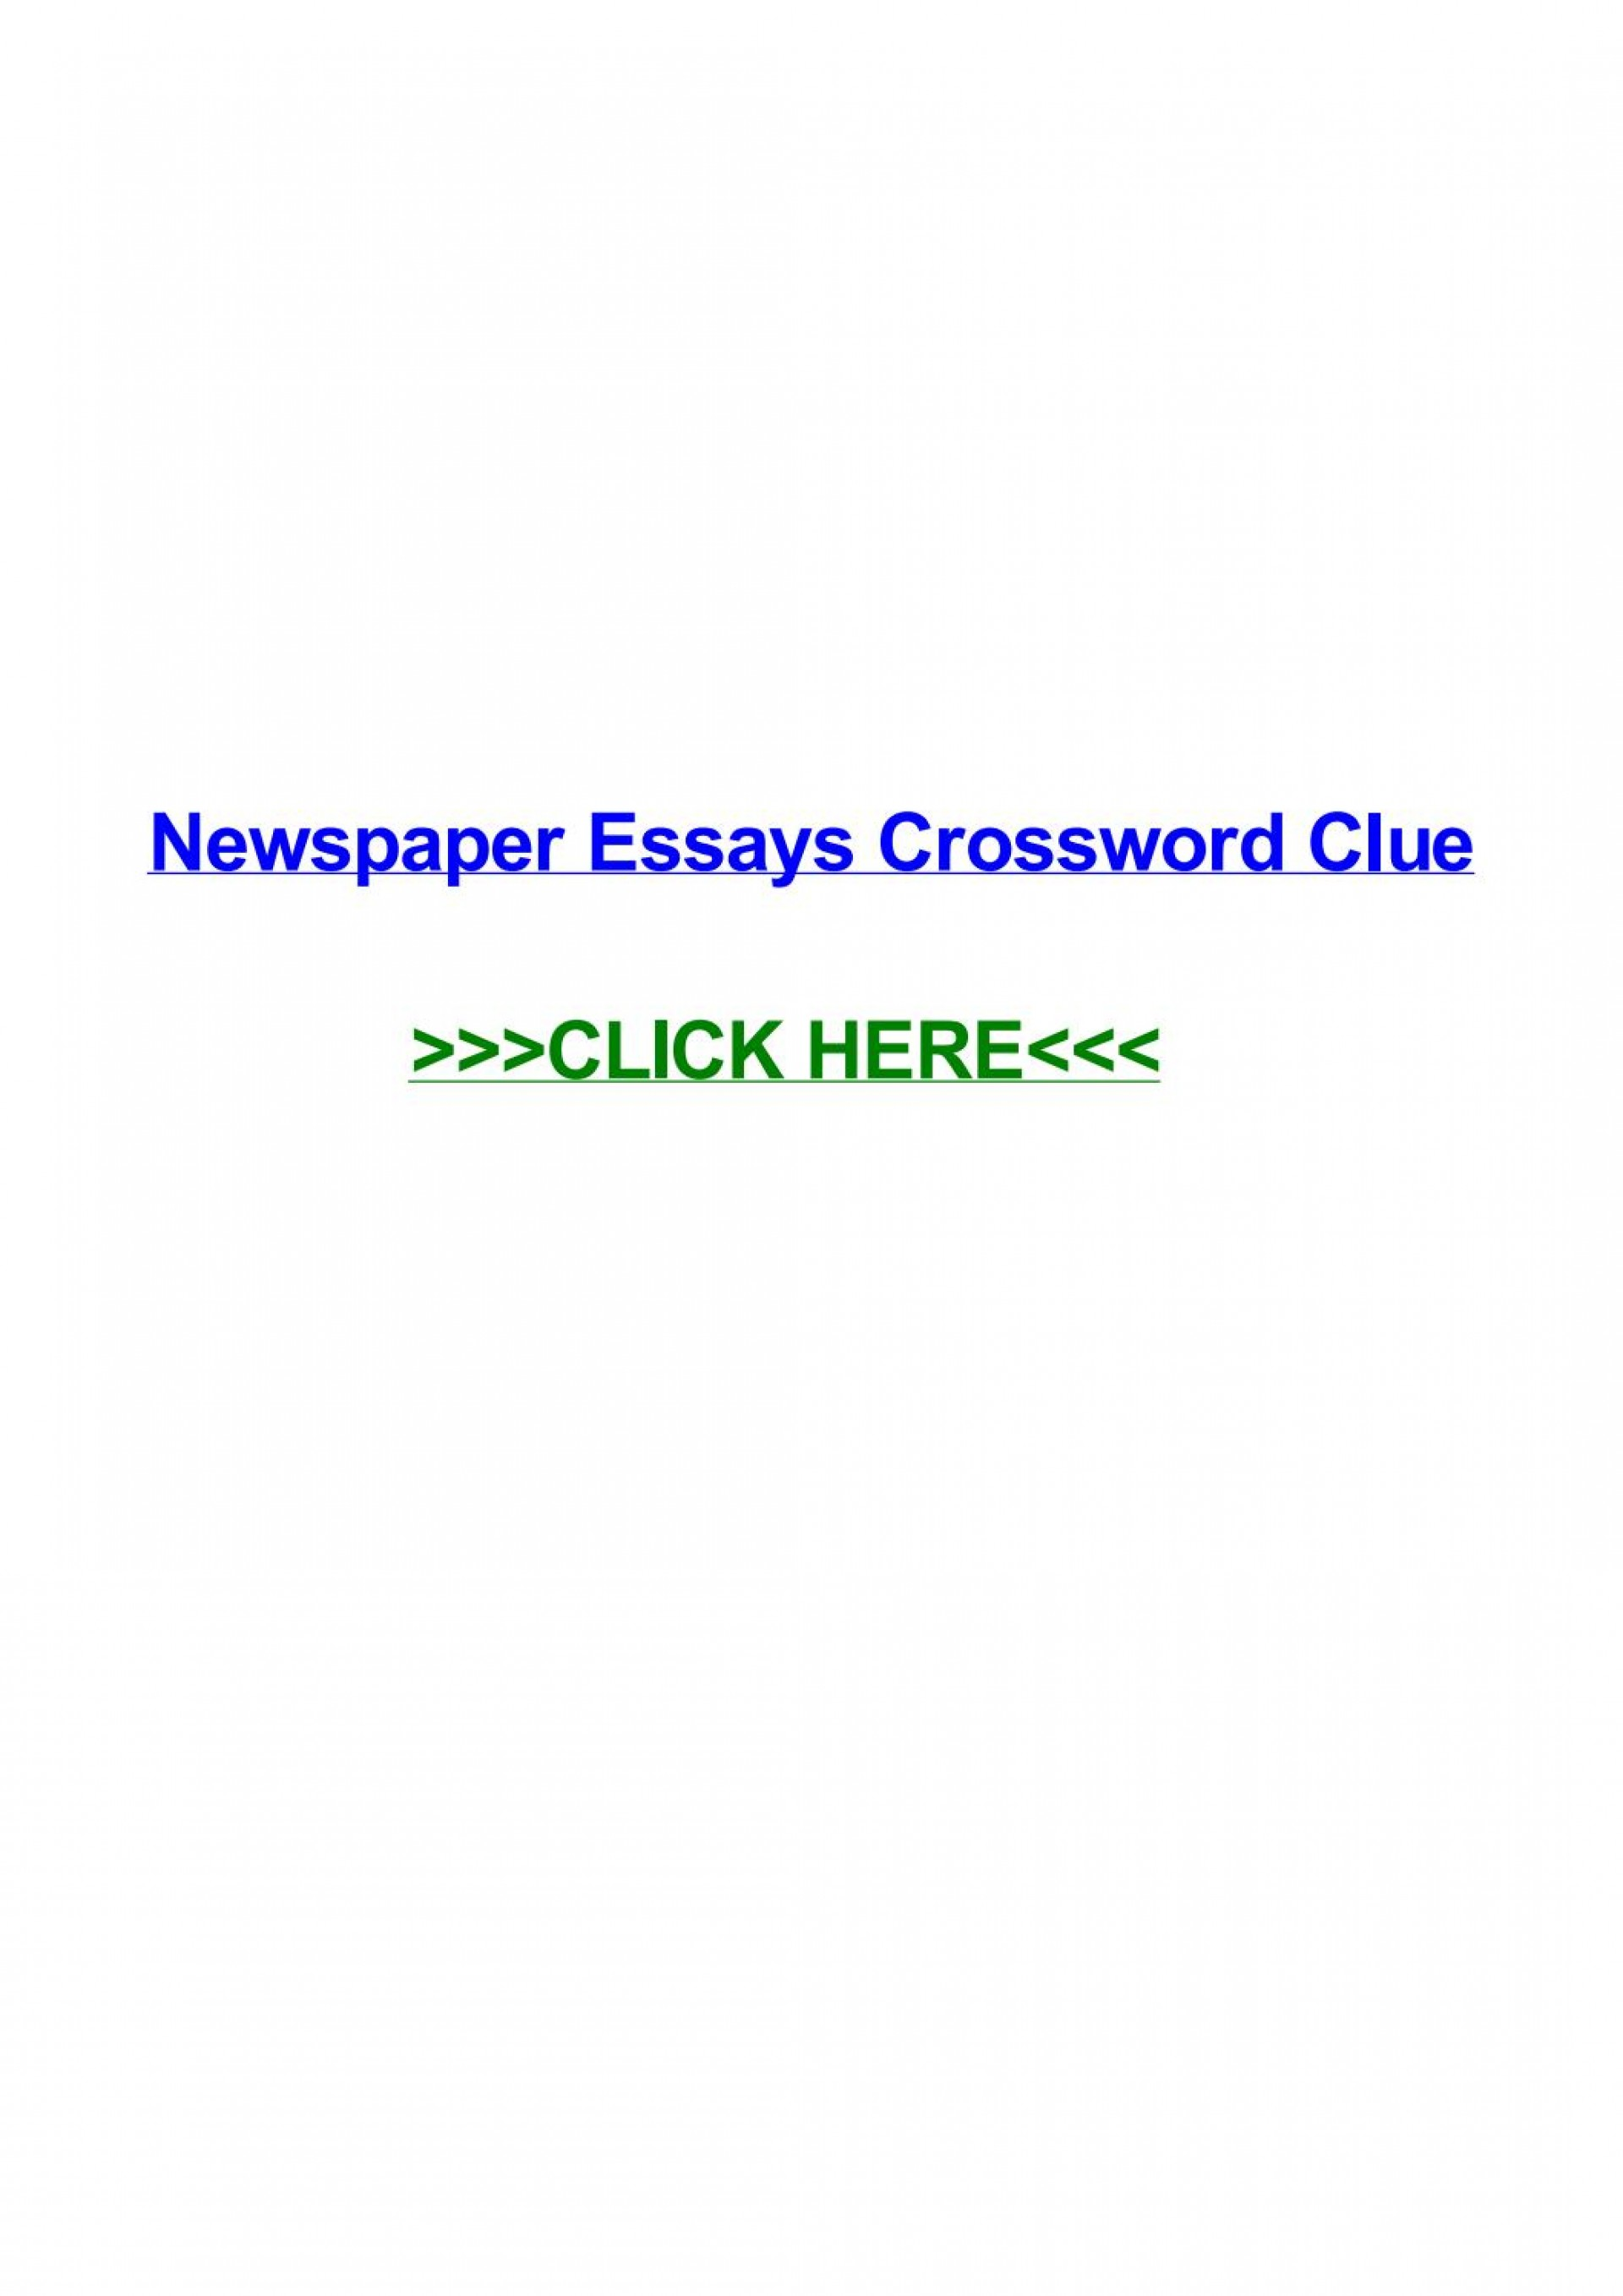 016 Political Essay Crossword Page 1 Dreaded Clue 1920